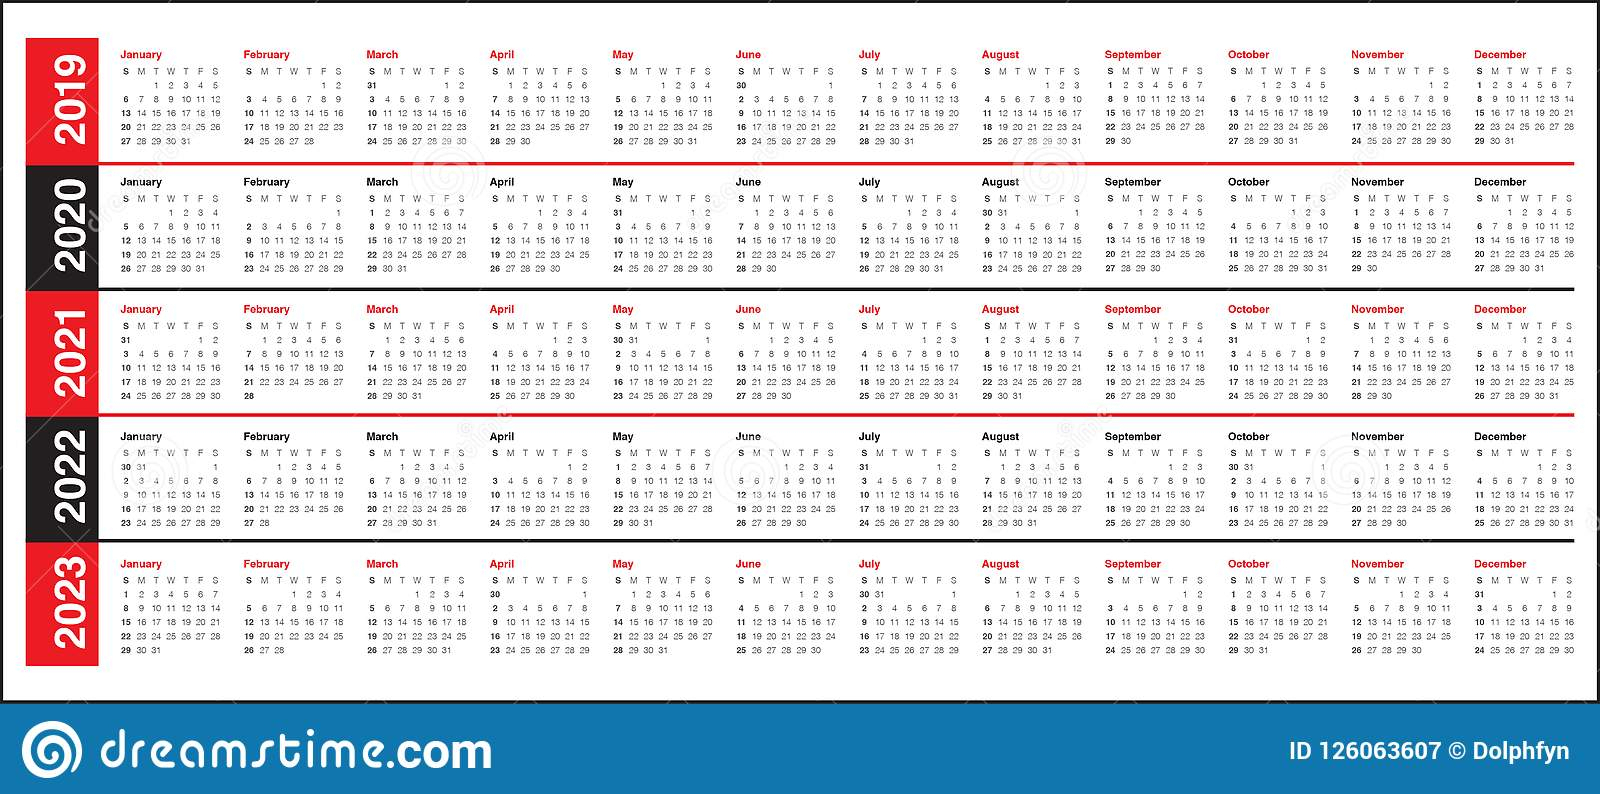 Tips Bermain Slot Online Lengkap for Three Year Printable Calendar 2020 To 2023